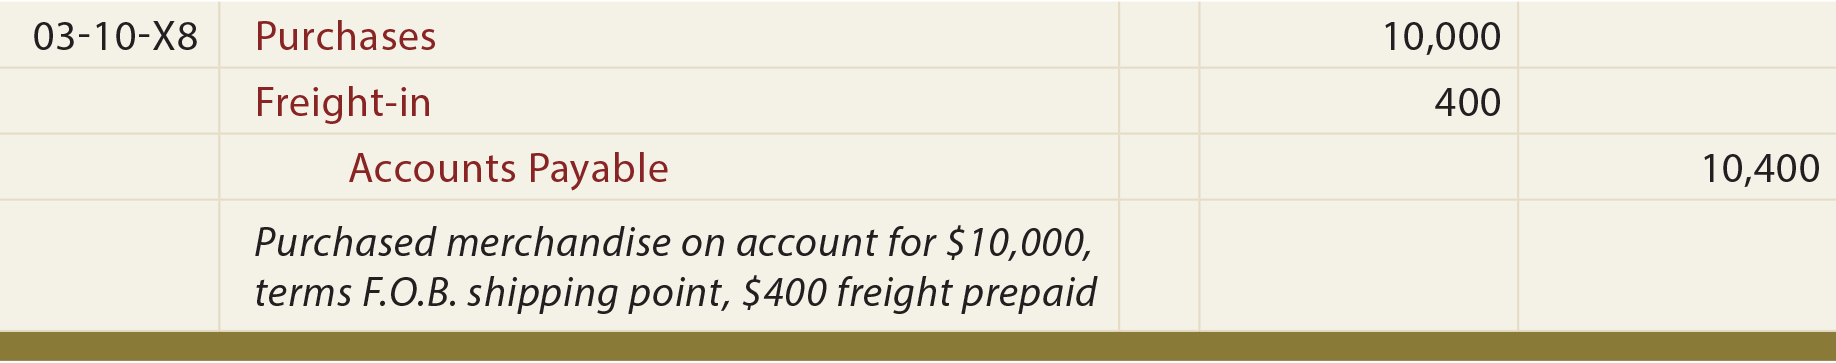 F.O.B. Shipping Point, Freight Prepaid Seller's General Journal Entry